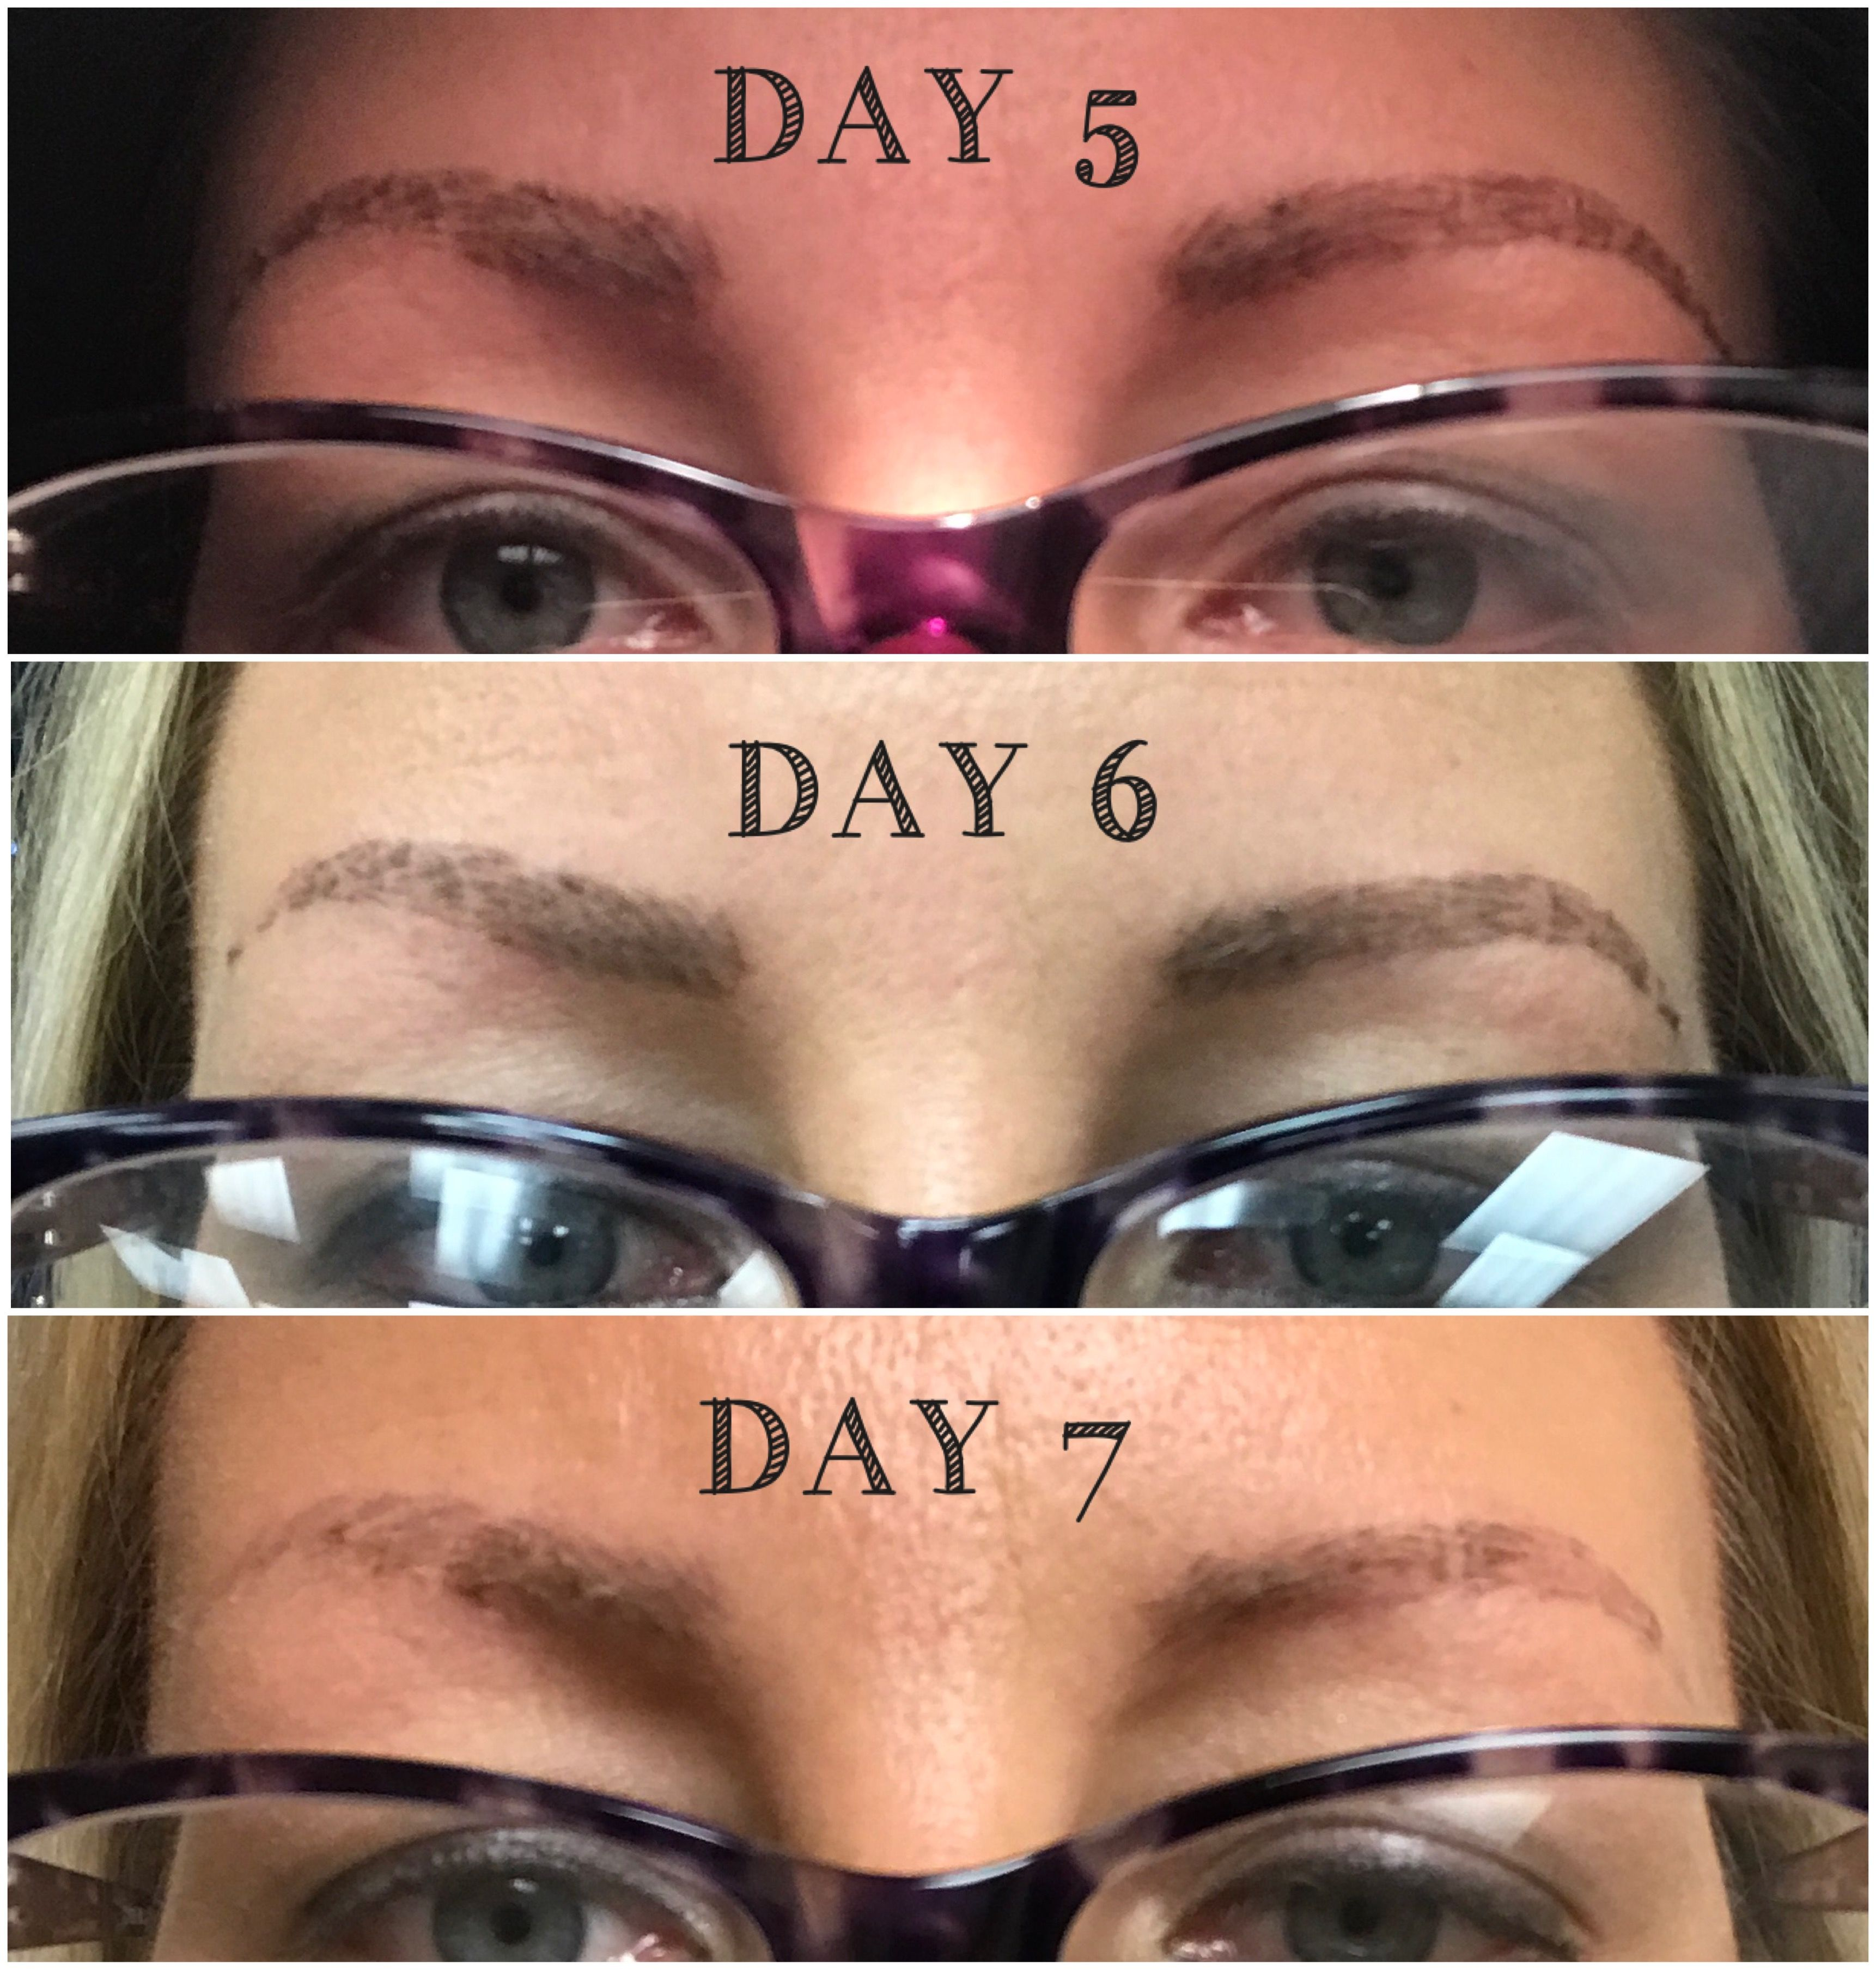 microblading healing day 5, day 6, and day 7